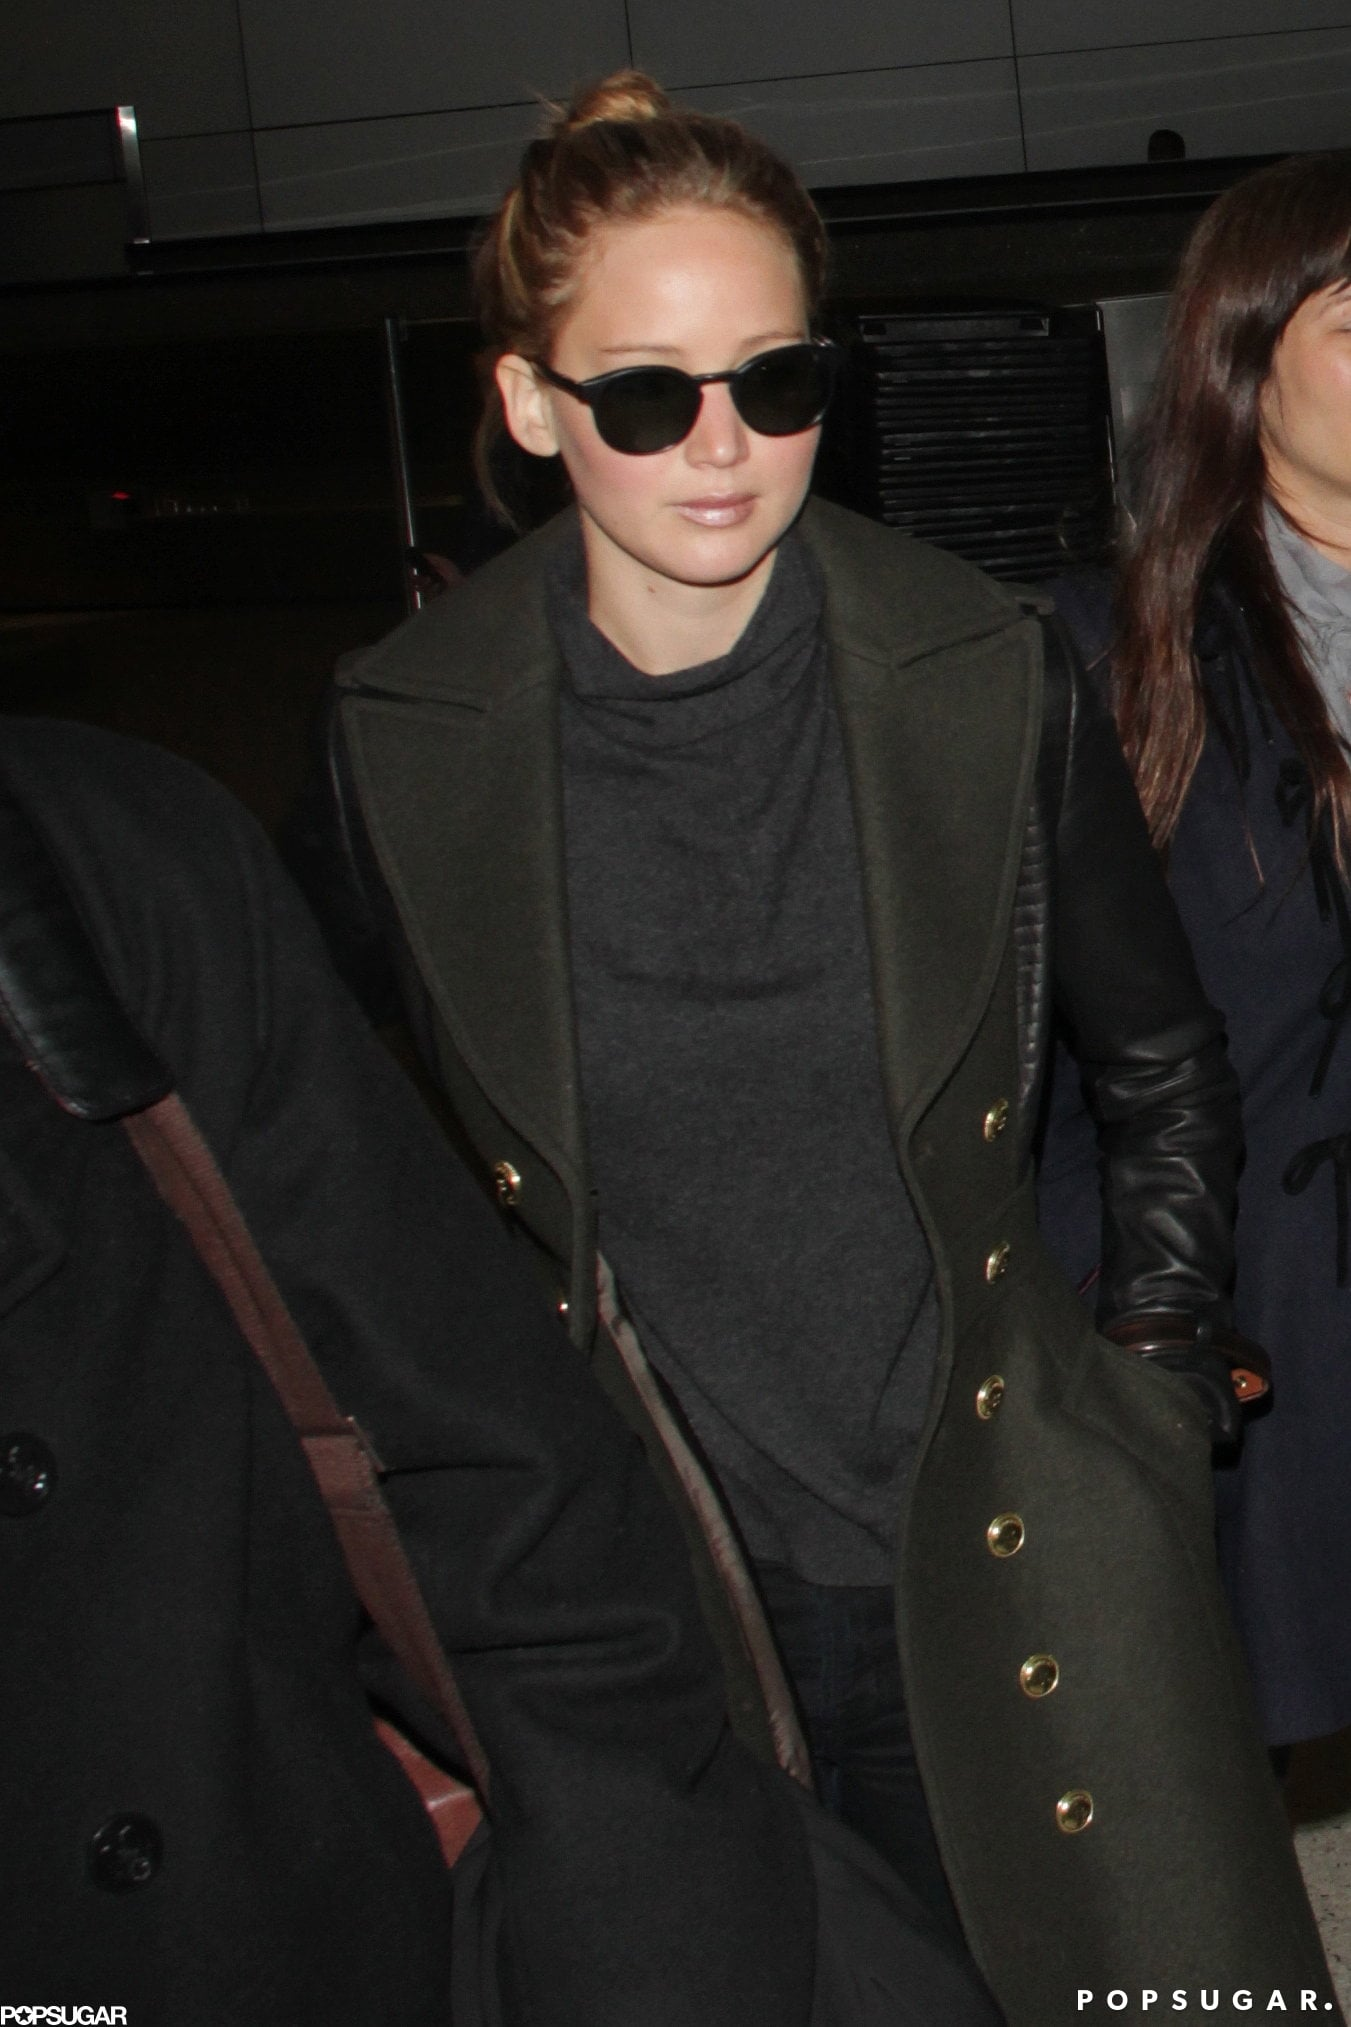 Jennifer Lawrence wore her sunglasses after landing in LA.